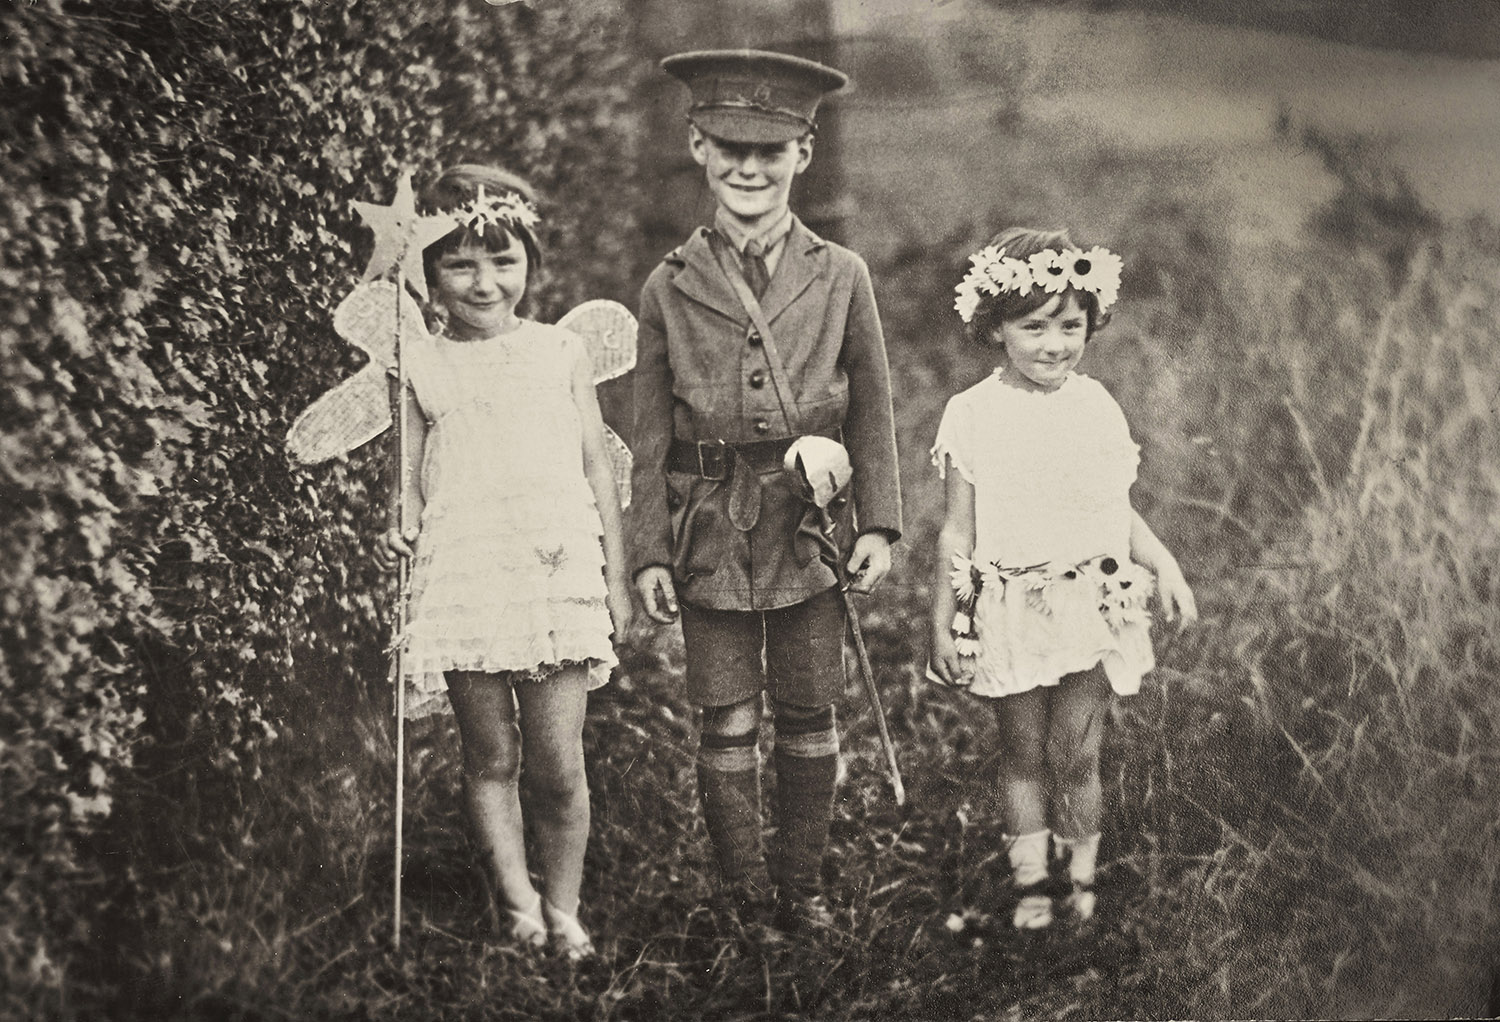 A charming black and white photograph from the 1920's